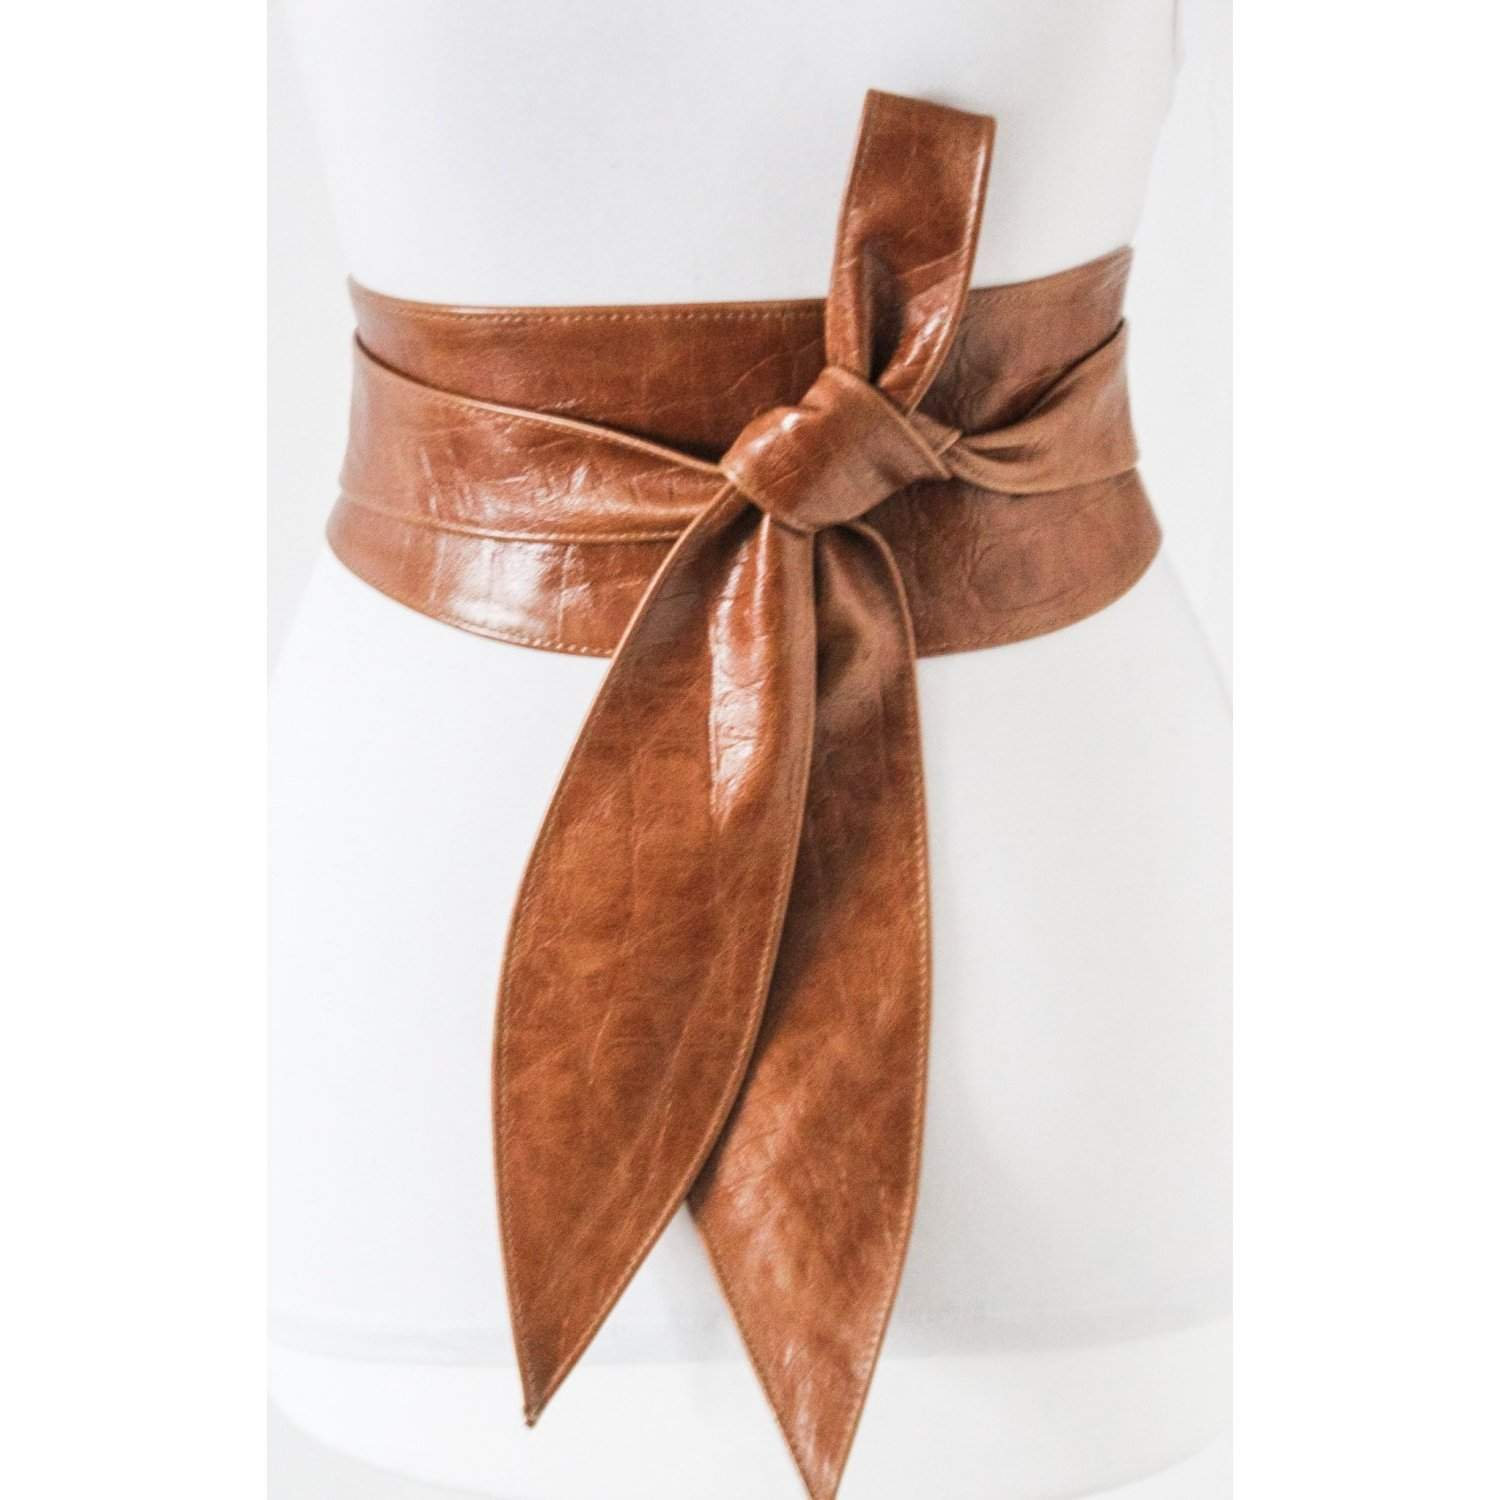 Tan Brown Croc effect Tulip Tie Obi Belt Leather Croc finish  | Leather corset belt | Tan Leather Belt| waist Belt | Petite to Plus Size - loveyaayaa